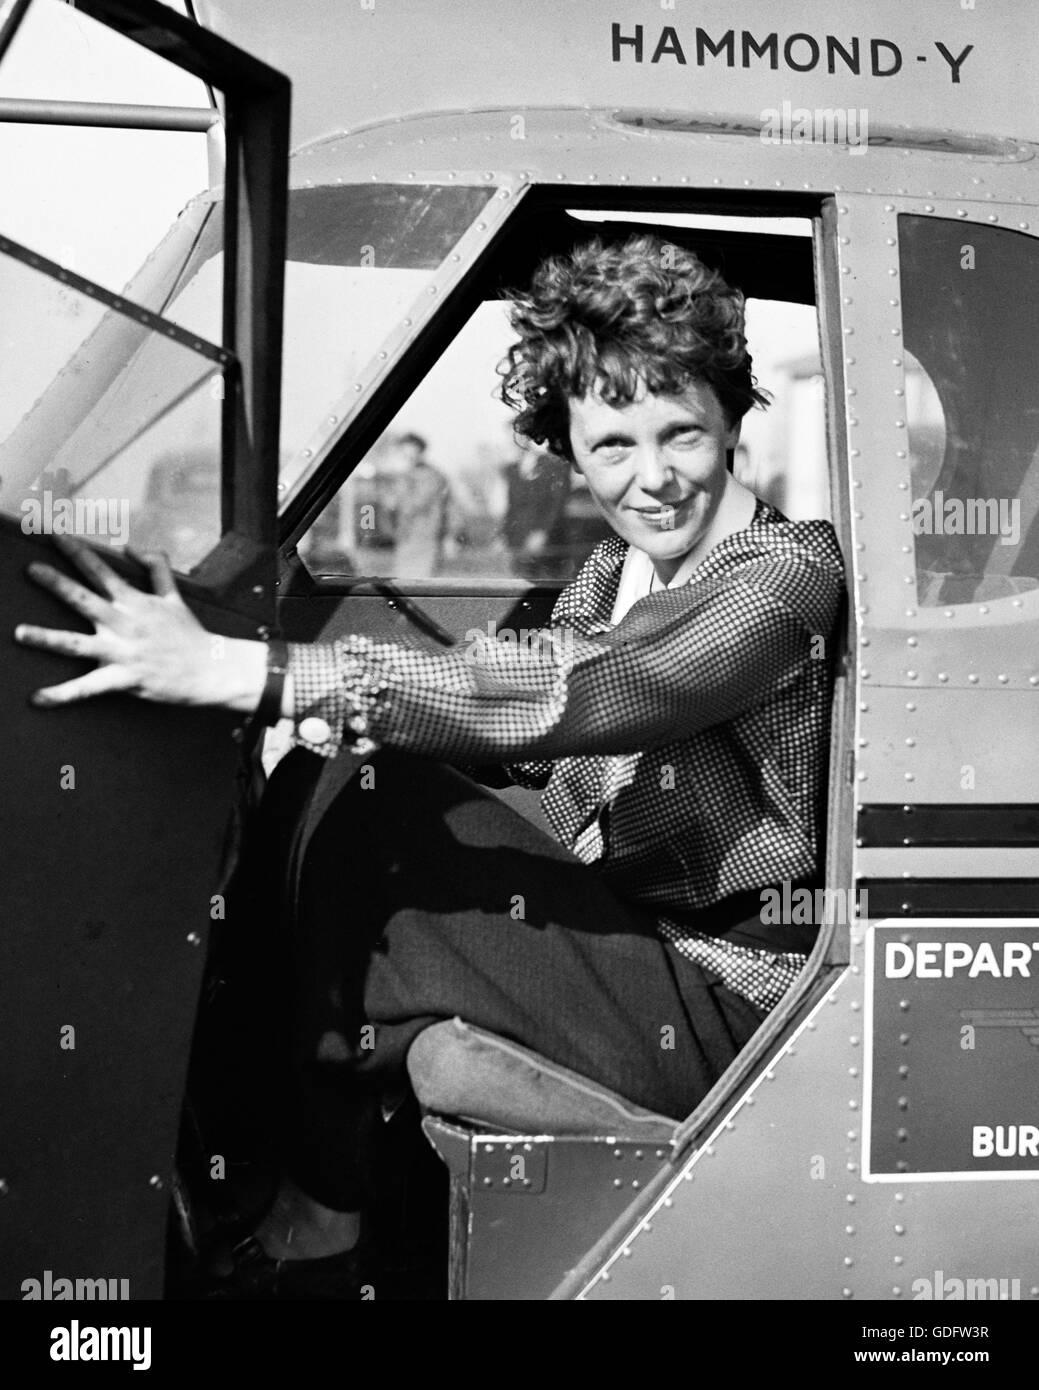 Amelia Earhart In The Cockpit Of An Airplane C